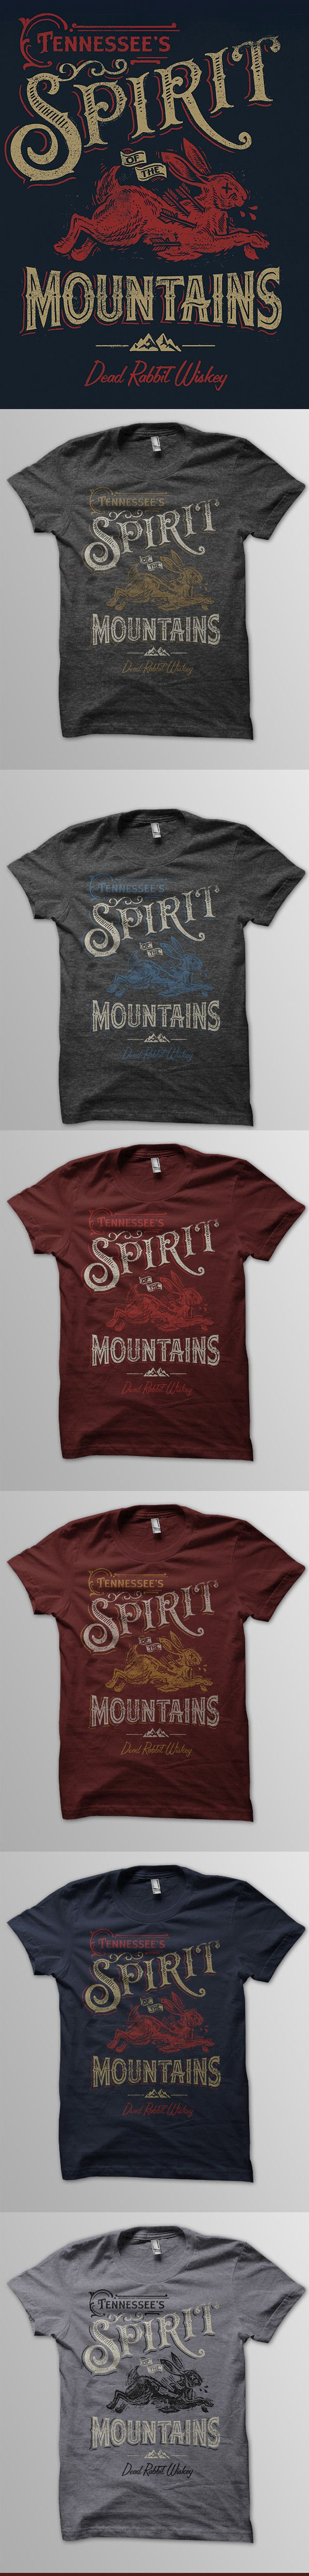 15 best images about sm tees on pinterest | brewery design, ux/ui